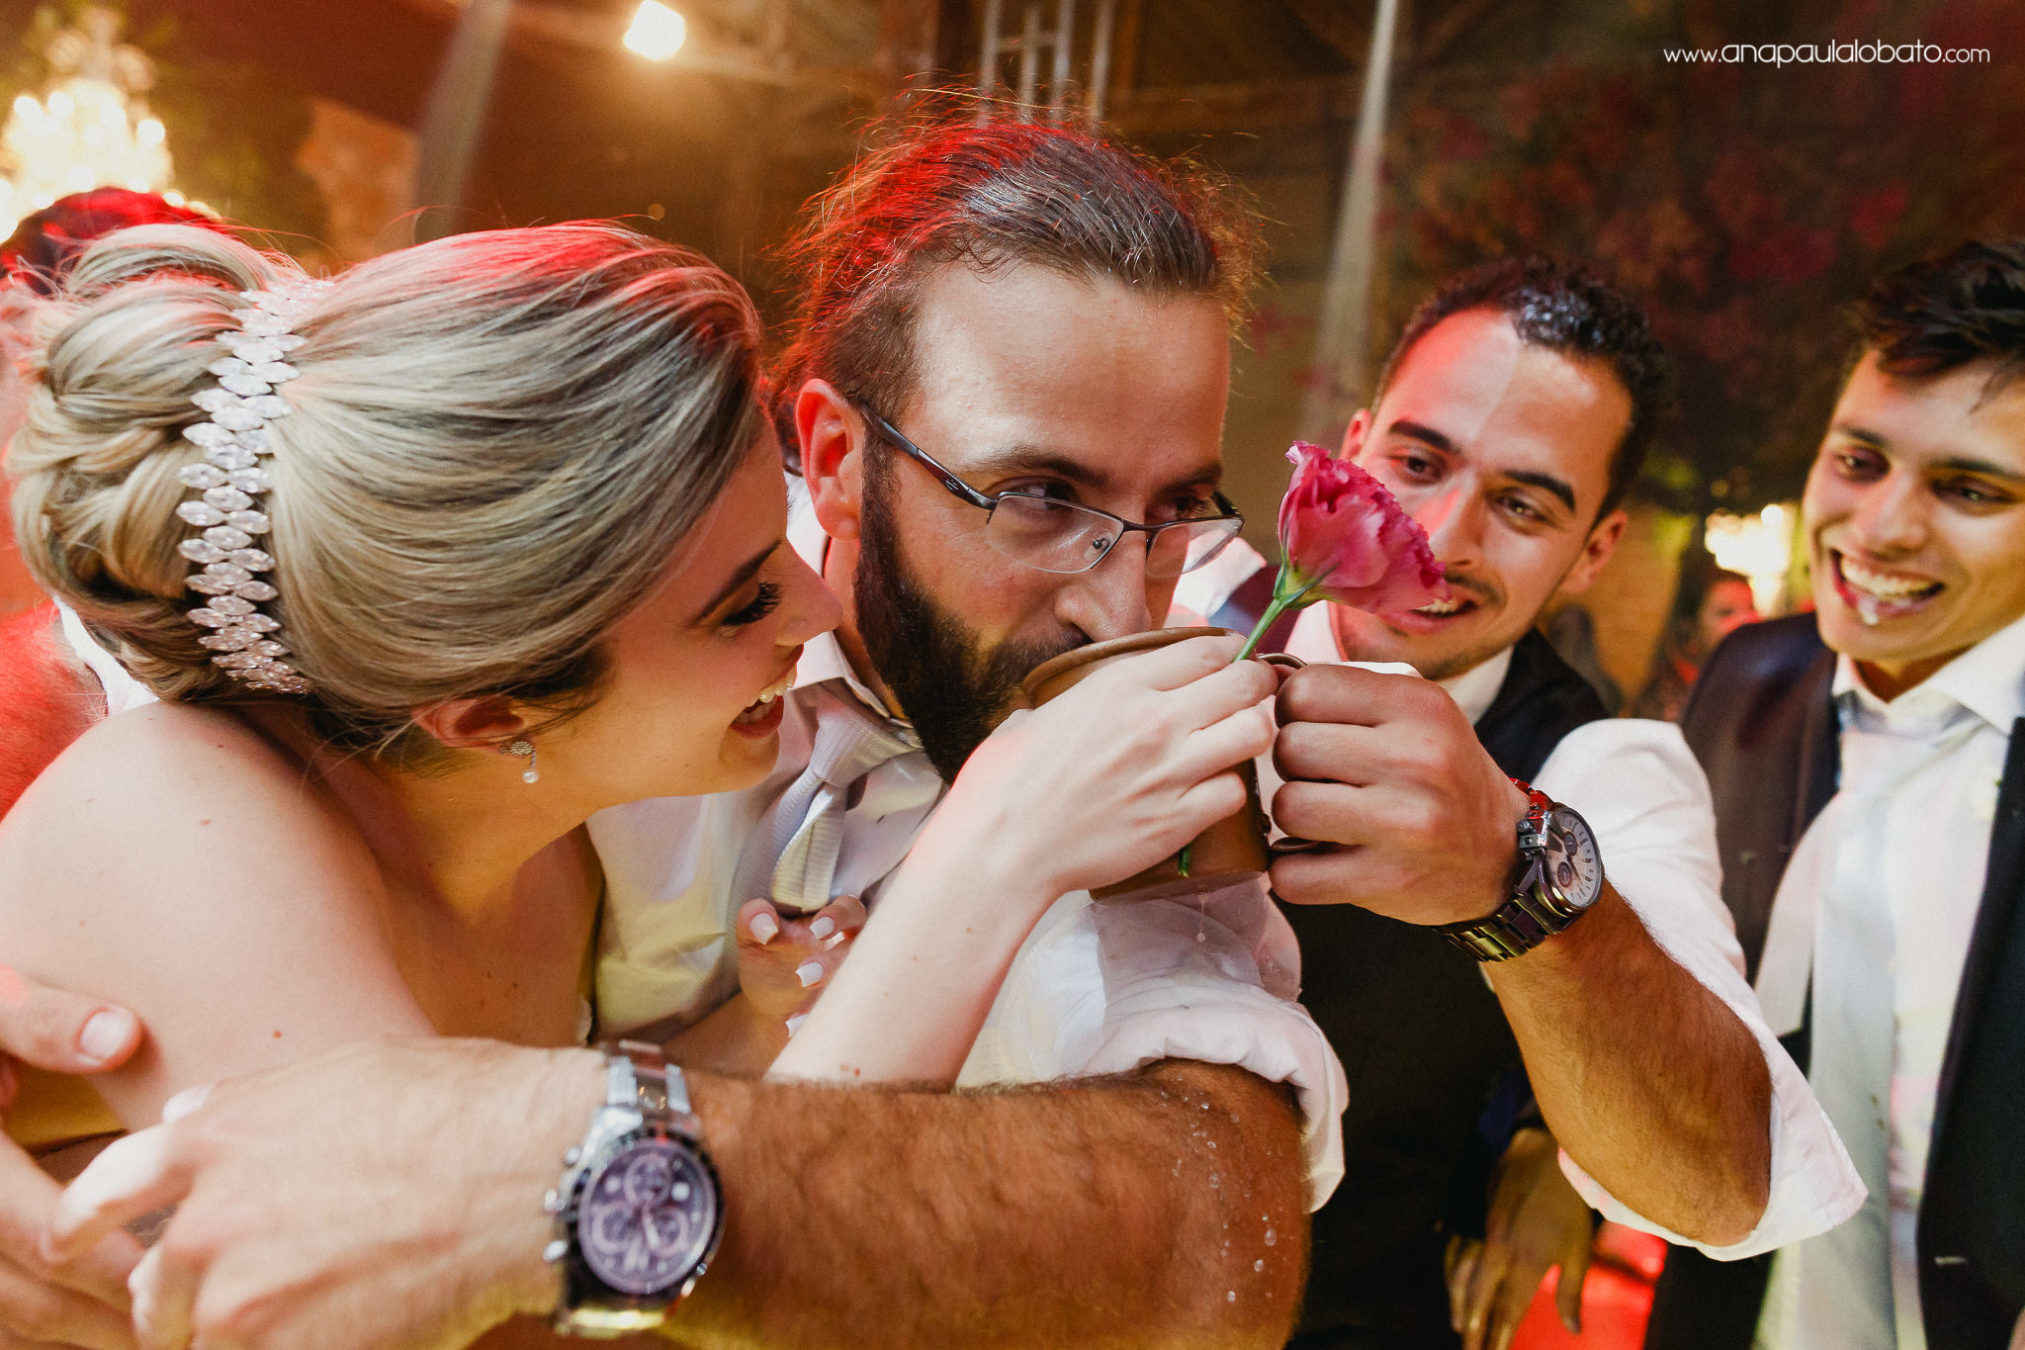 Crazy and funny drinking wedding moment